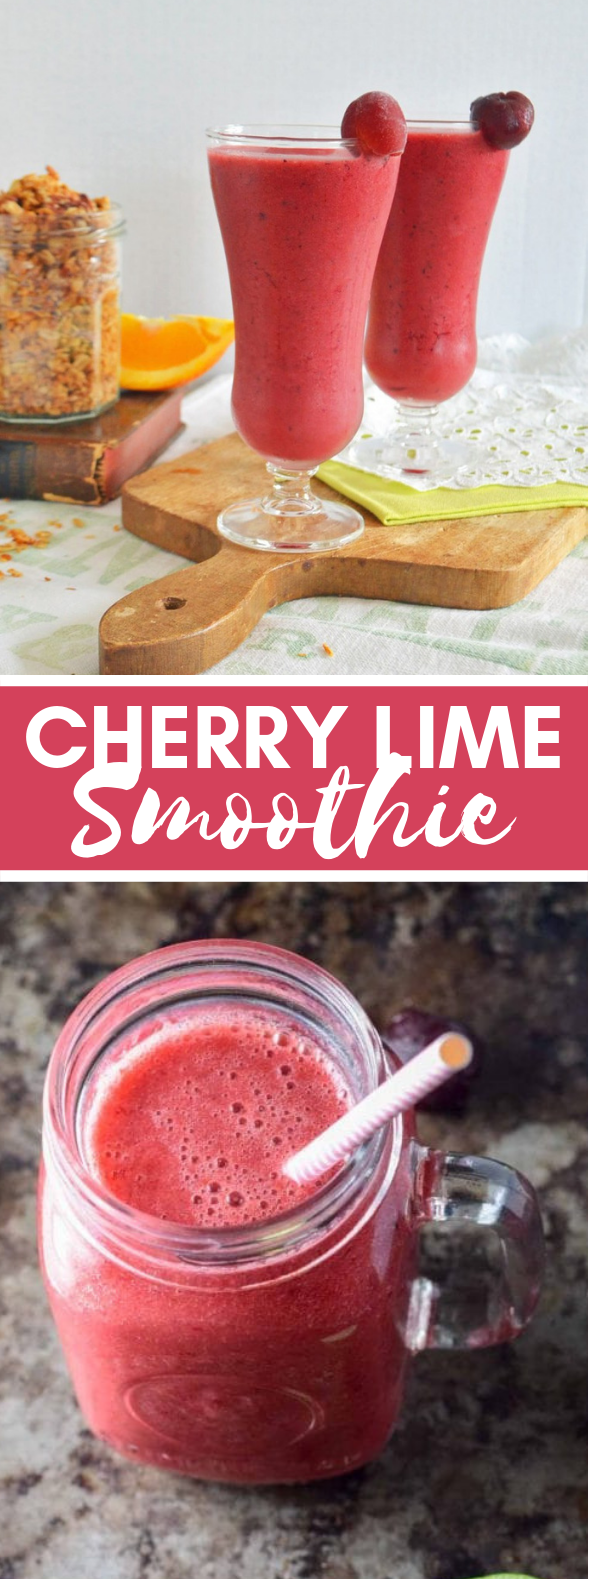 Cherry Lime Smoothie – Dietitian Approved #drinks #valentineday